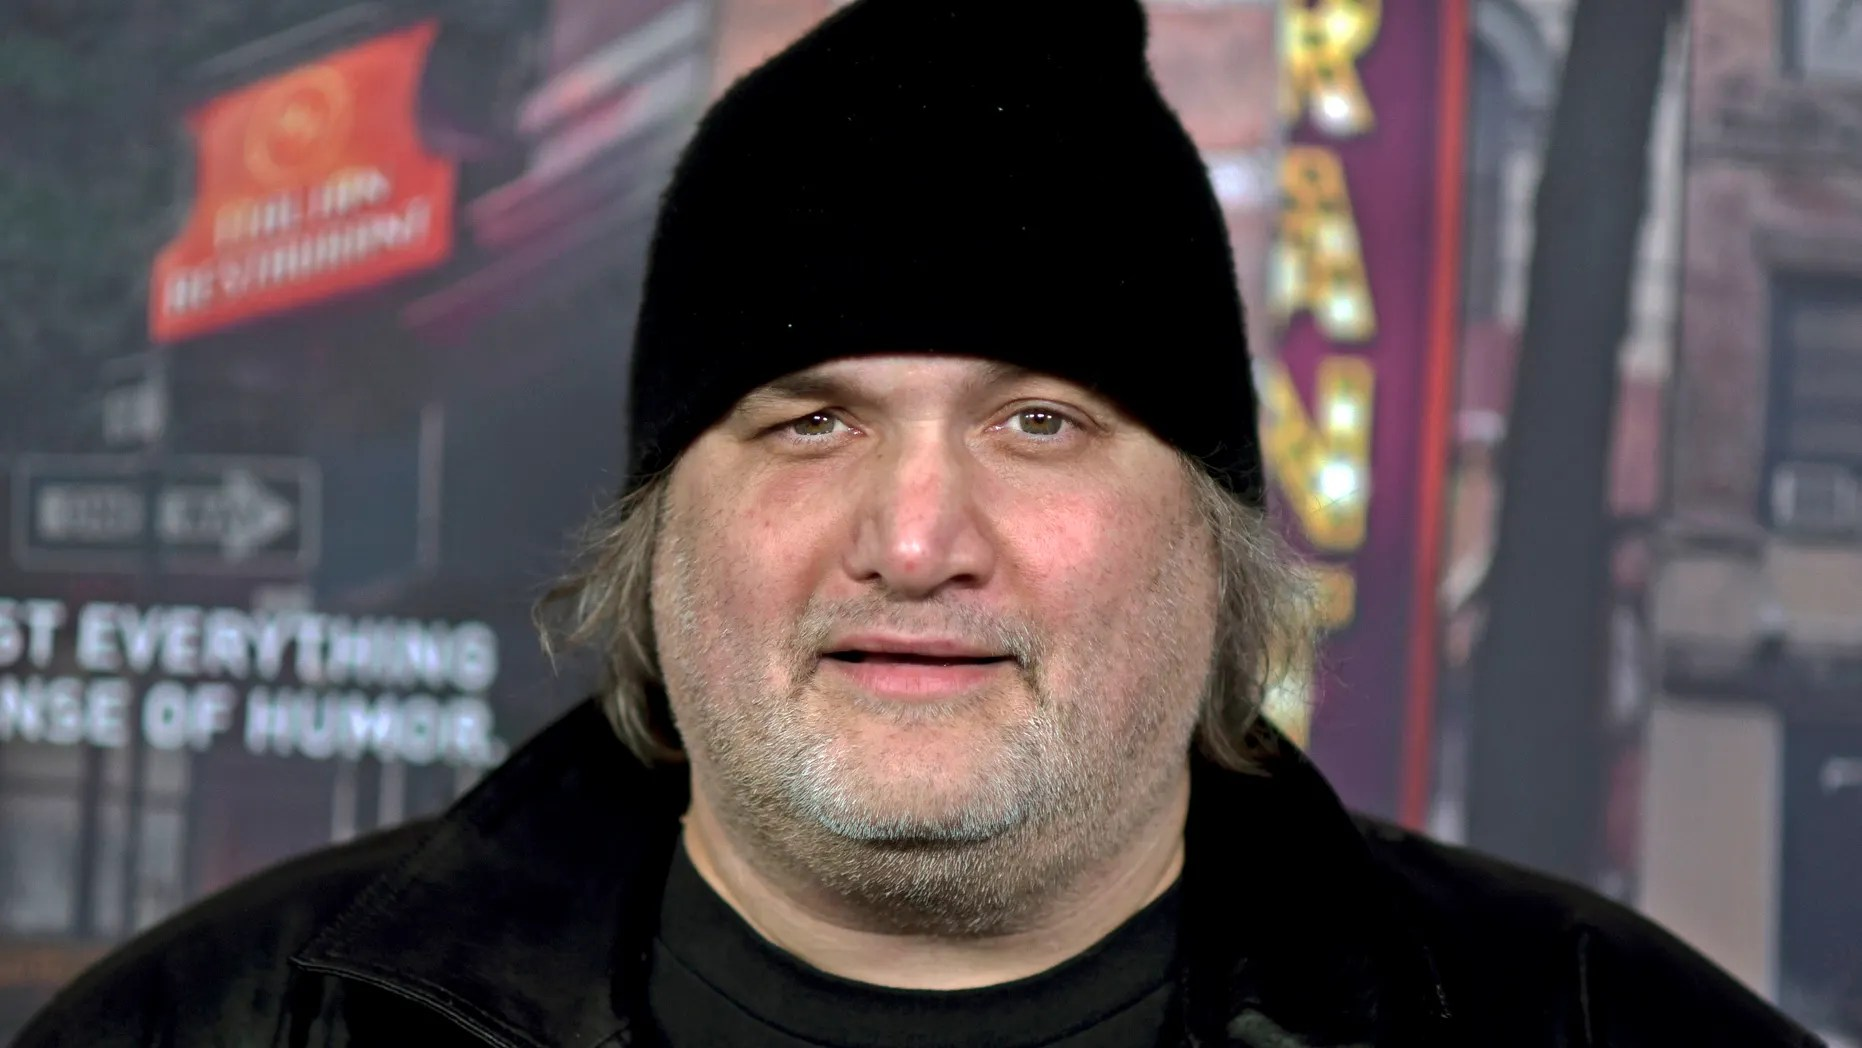 Artie Lange New York Artie Lange Claims He Was Kidnapped 11 Months Ago Due To Gambling